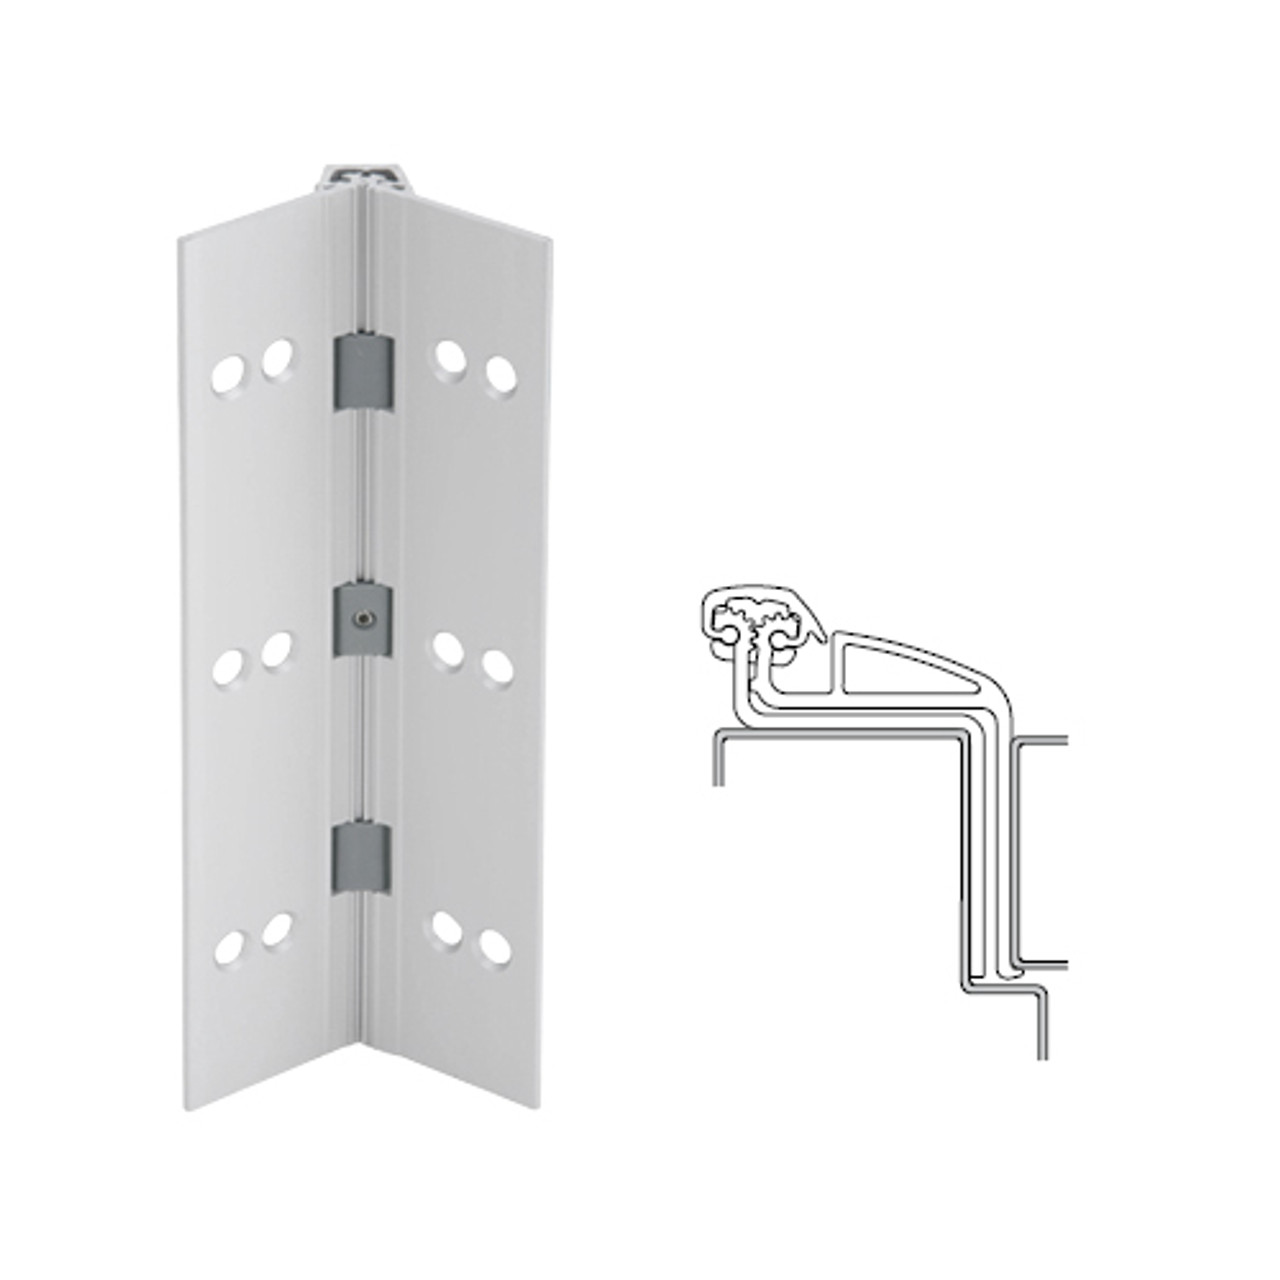 041XY-US28-95-TF IVES Full Mortise Continuous Geared Hinges with Thread Forming Screws in Satin Aluminum